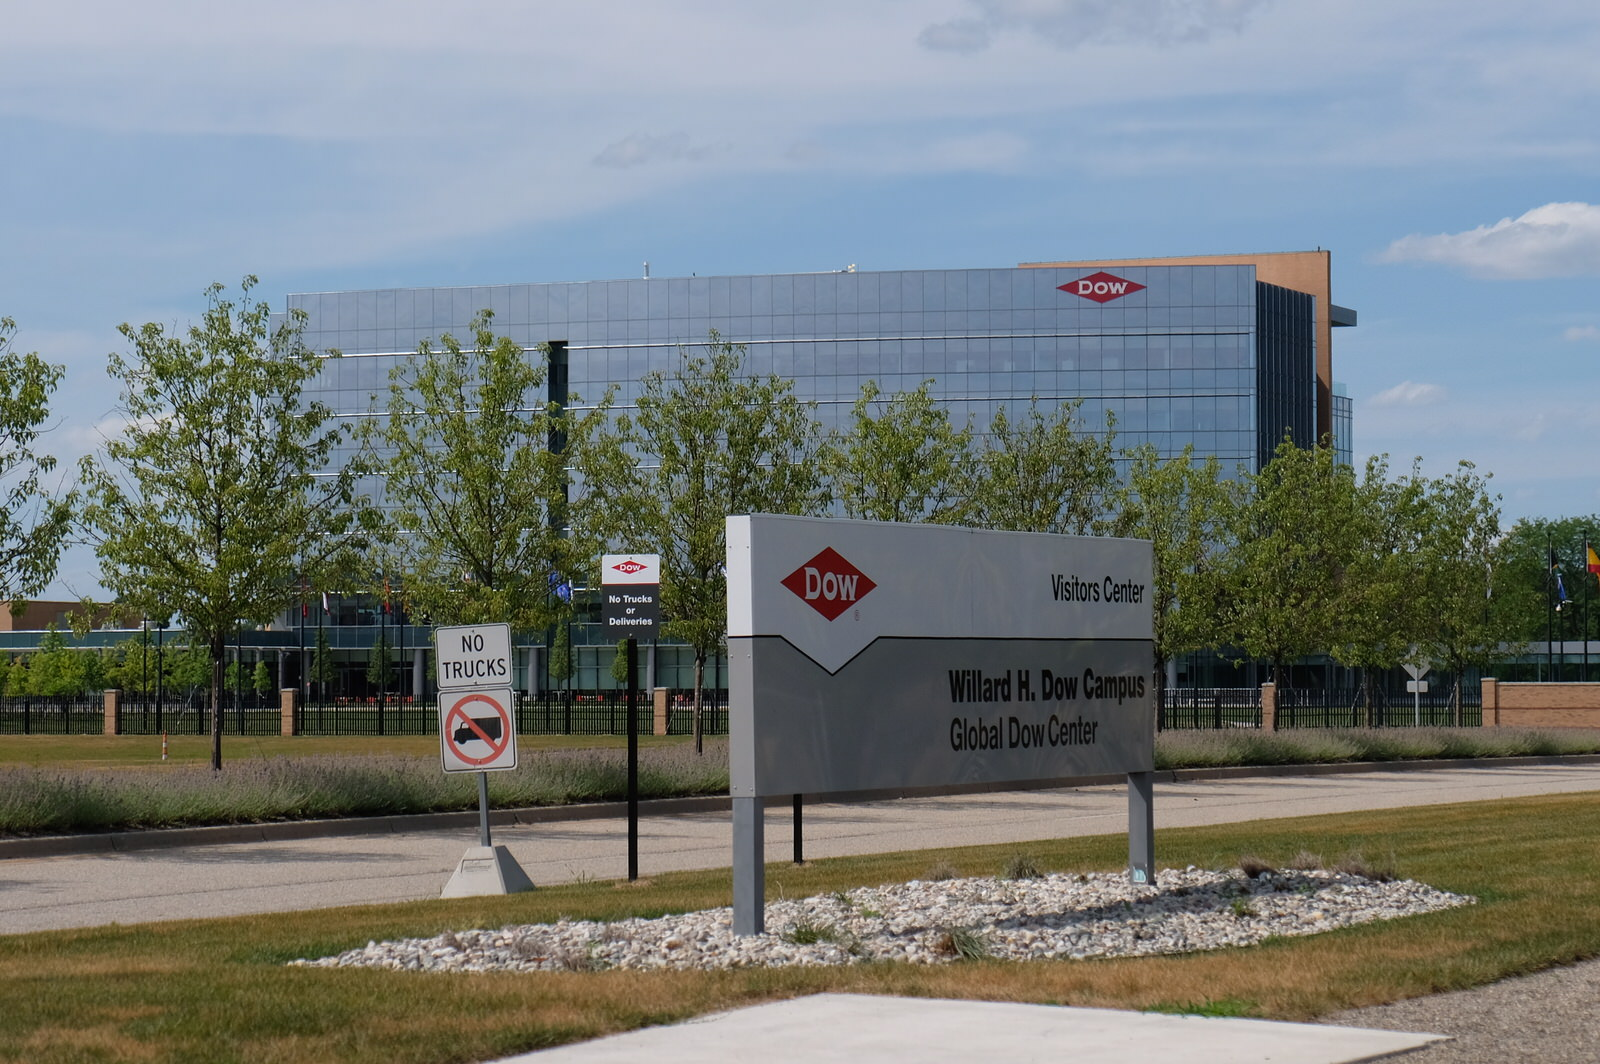 Entrance to Dow Chemical's corporate headquarters in Midland, Michigan.